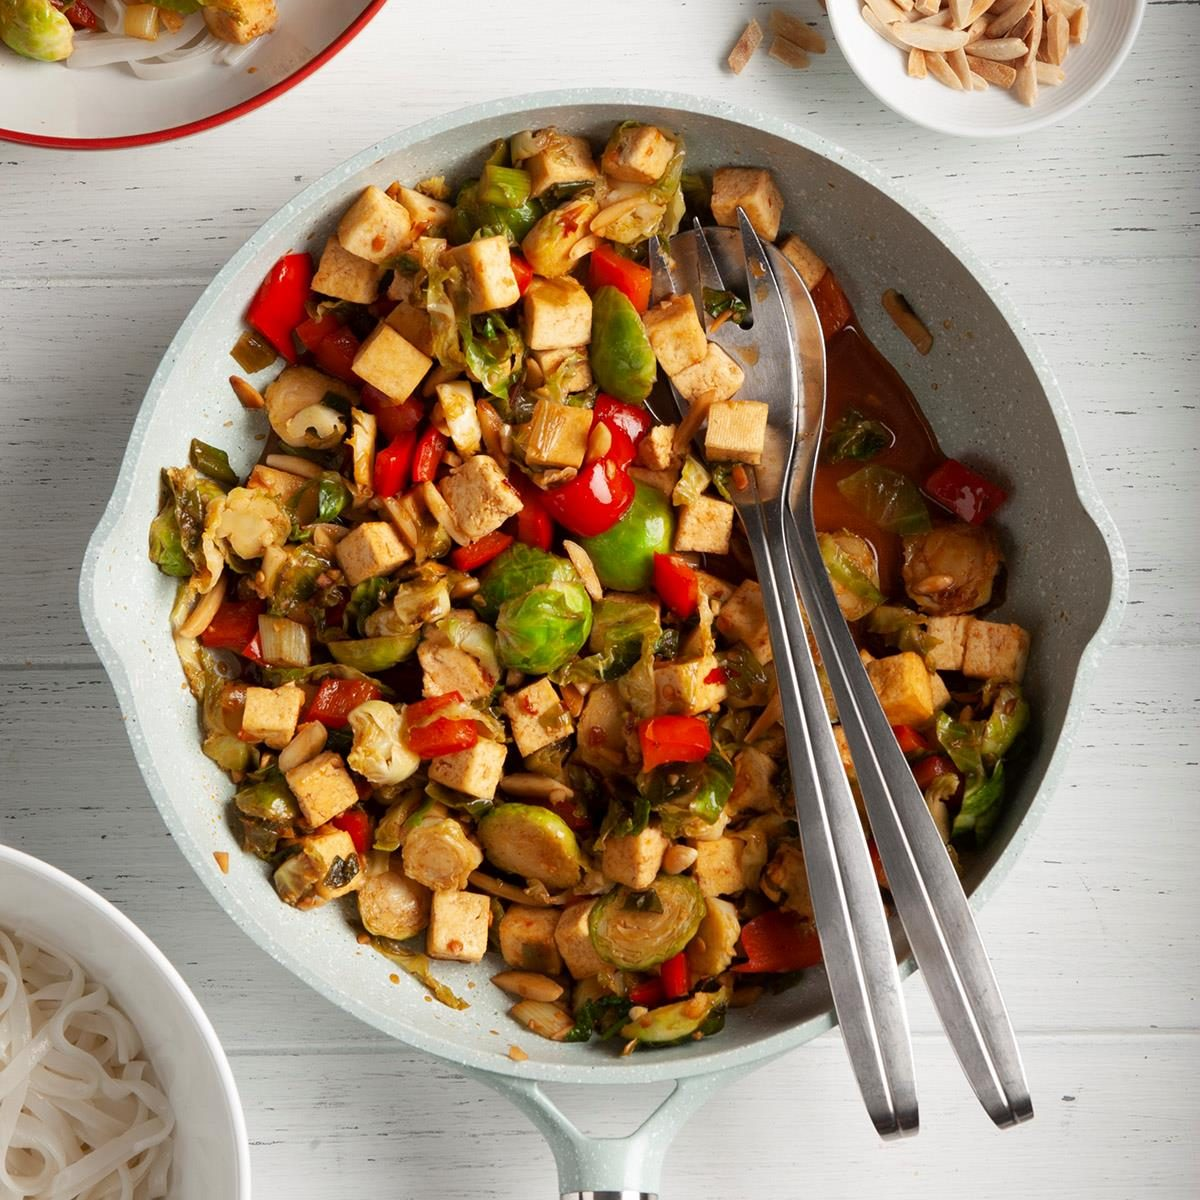 Runner-Up: Tofu Stir-Fry with Brussels Sprouts